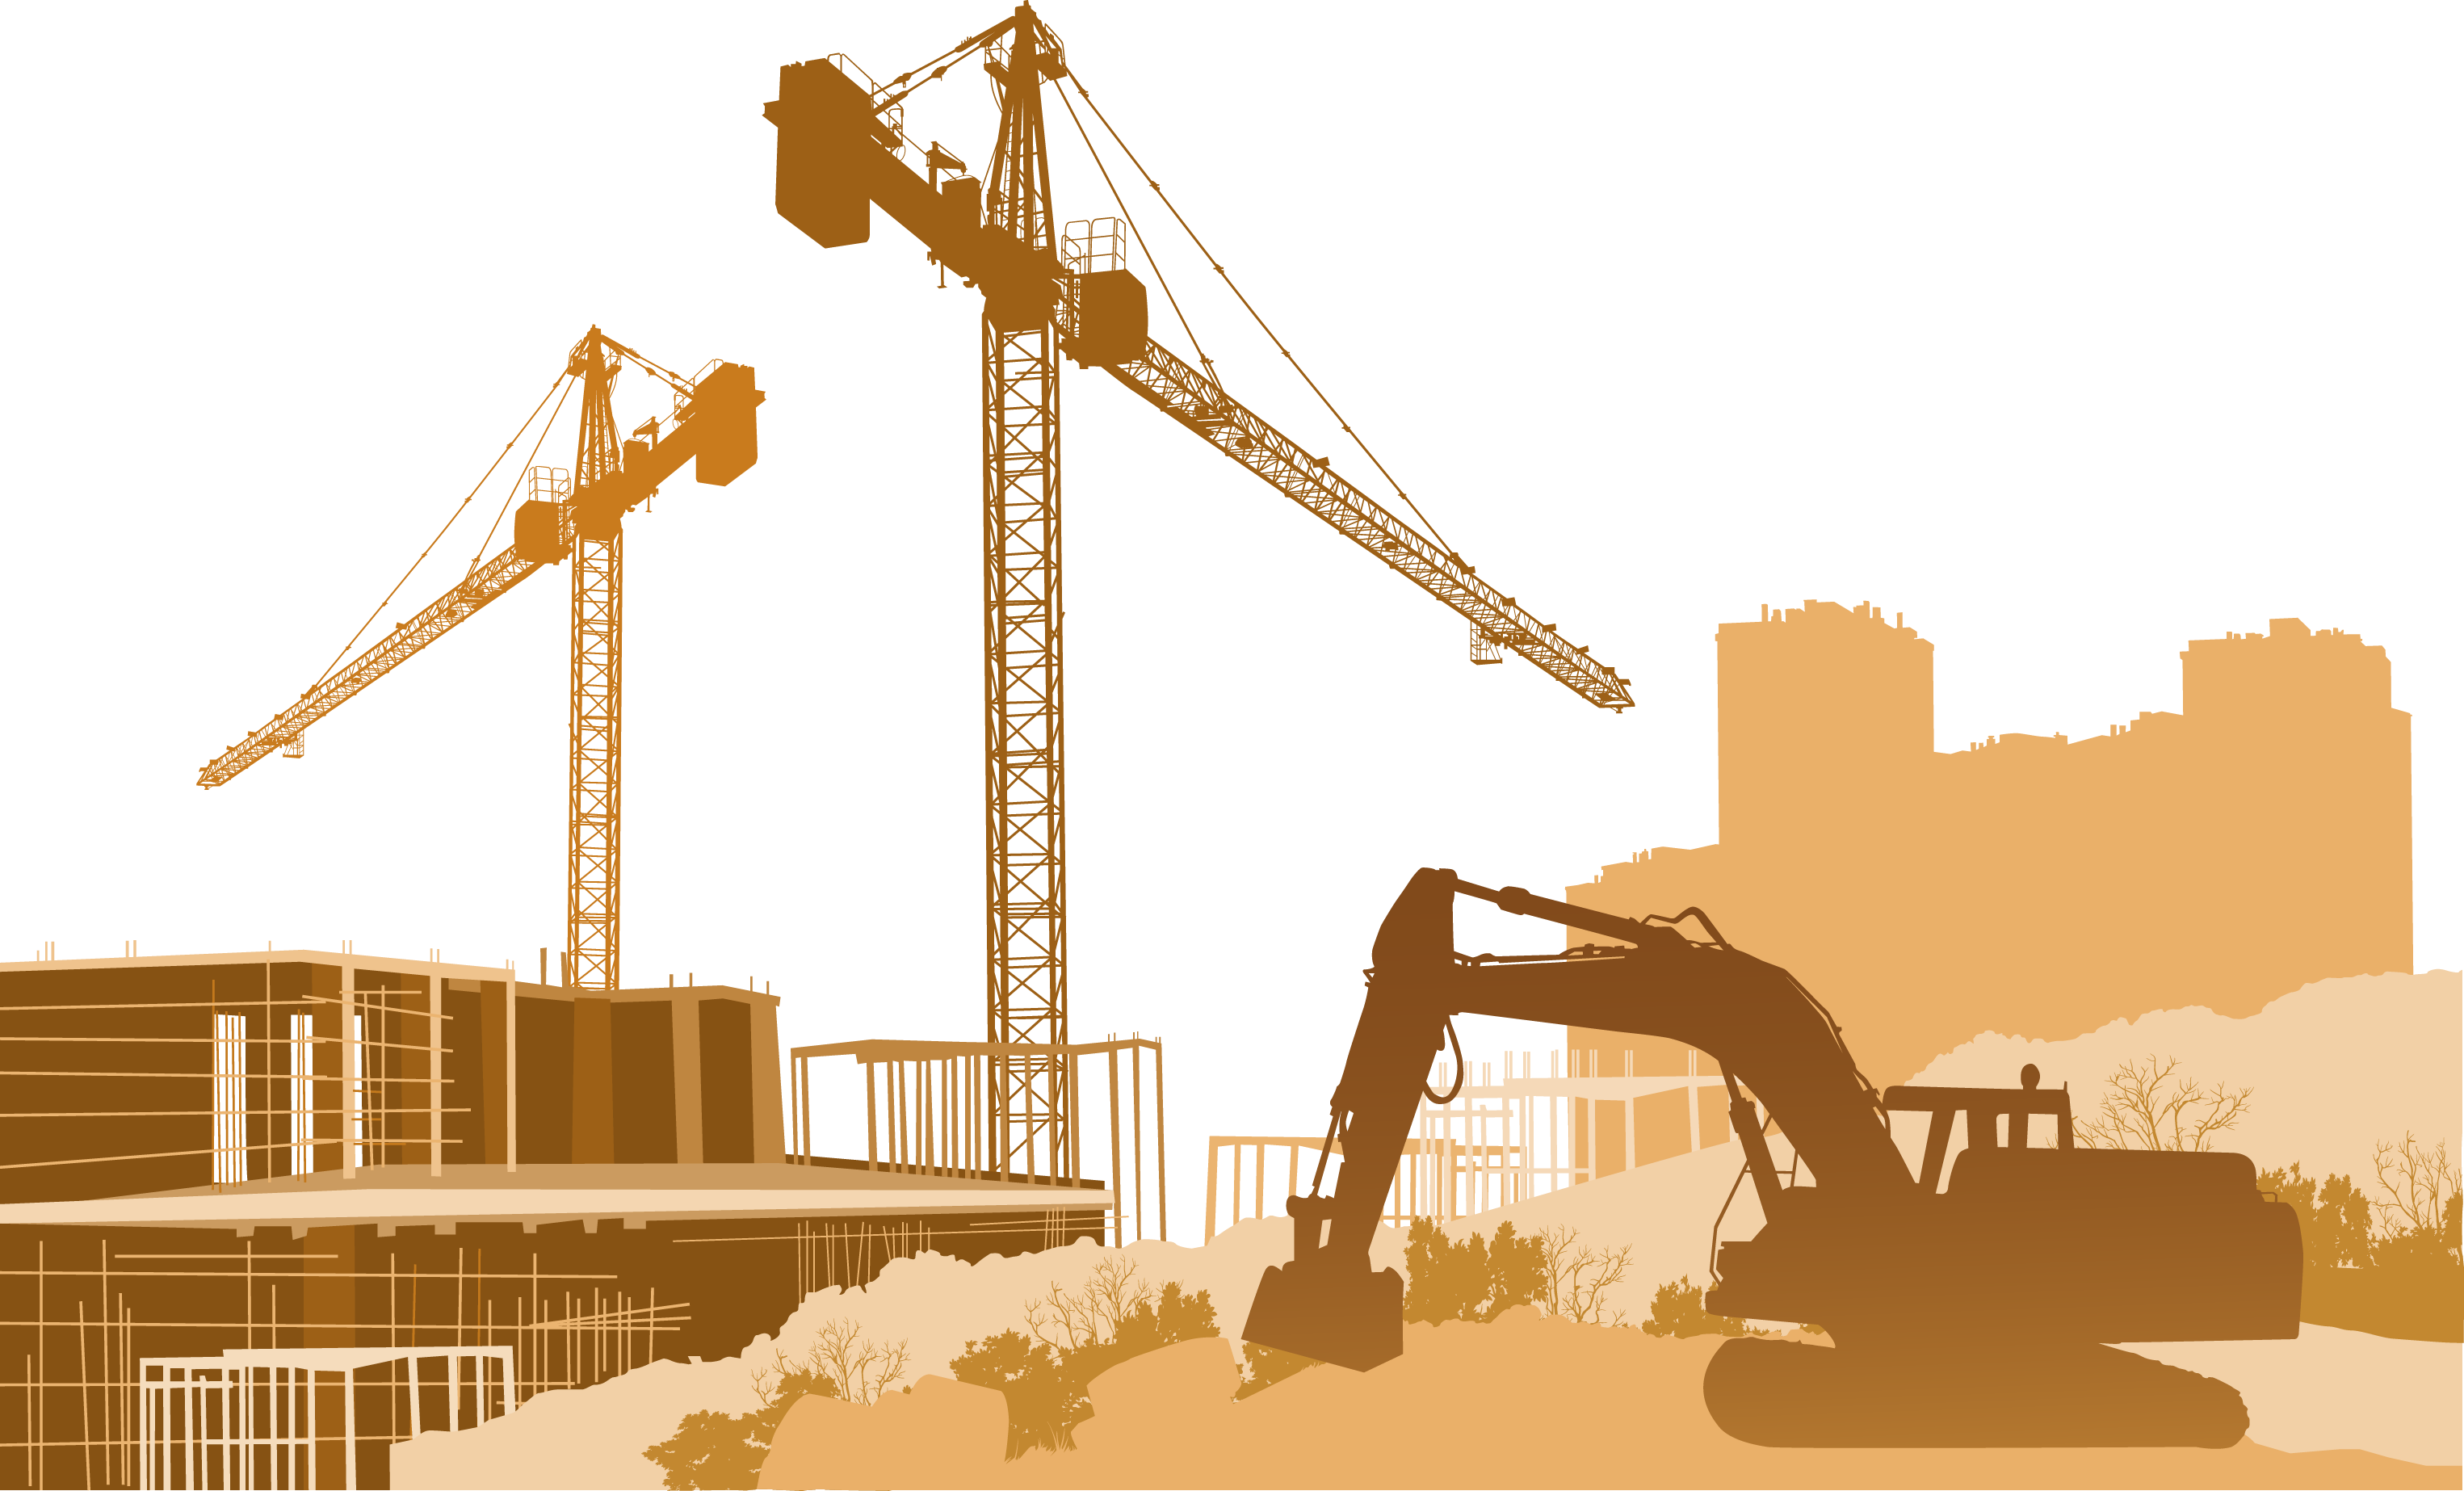 3051x1846 Architectural Engineering Construction Site Safety Crane